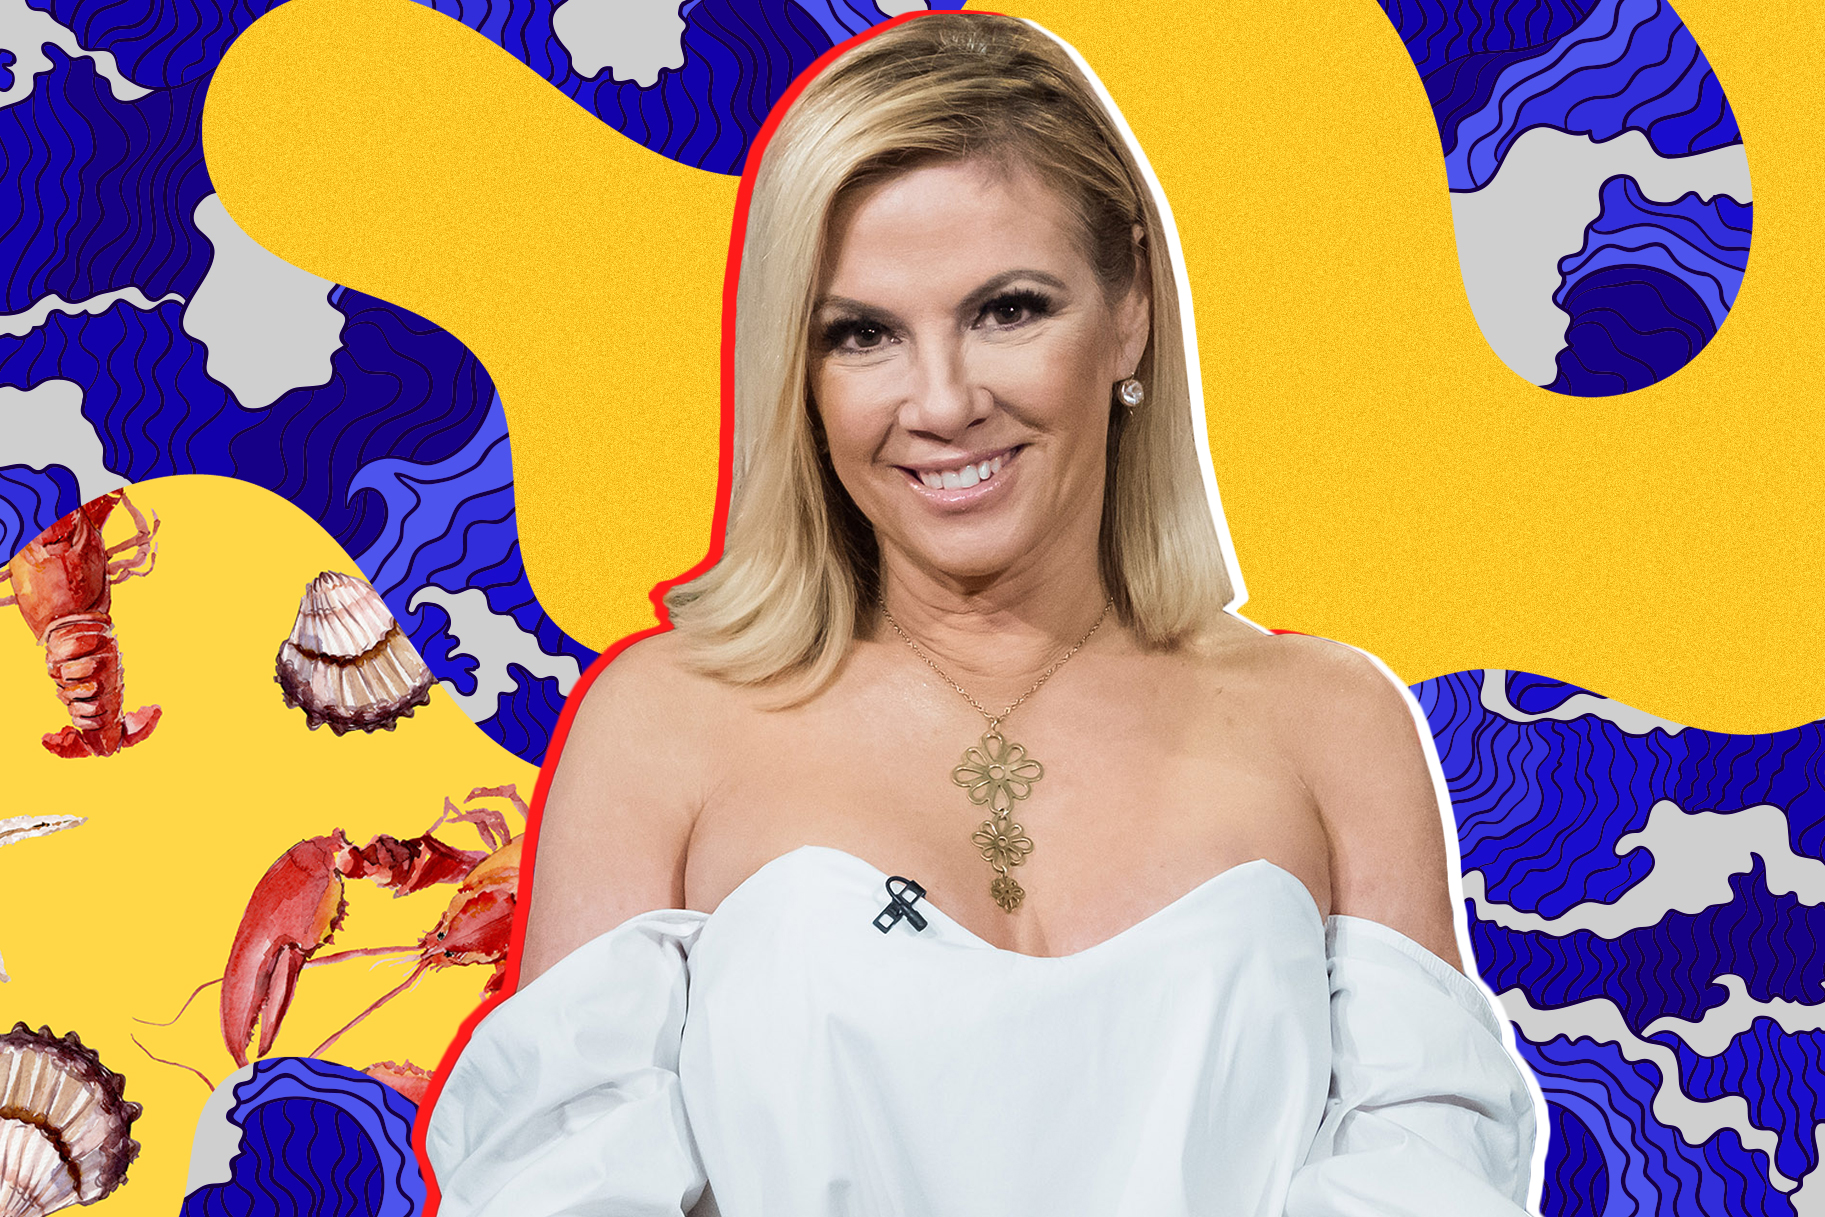 Ramona Singer on the RHONY Lobster Episode